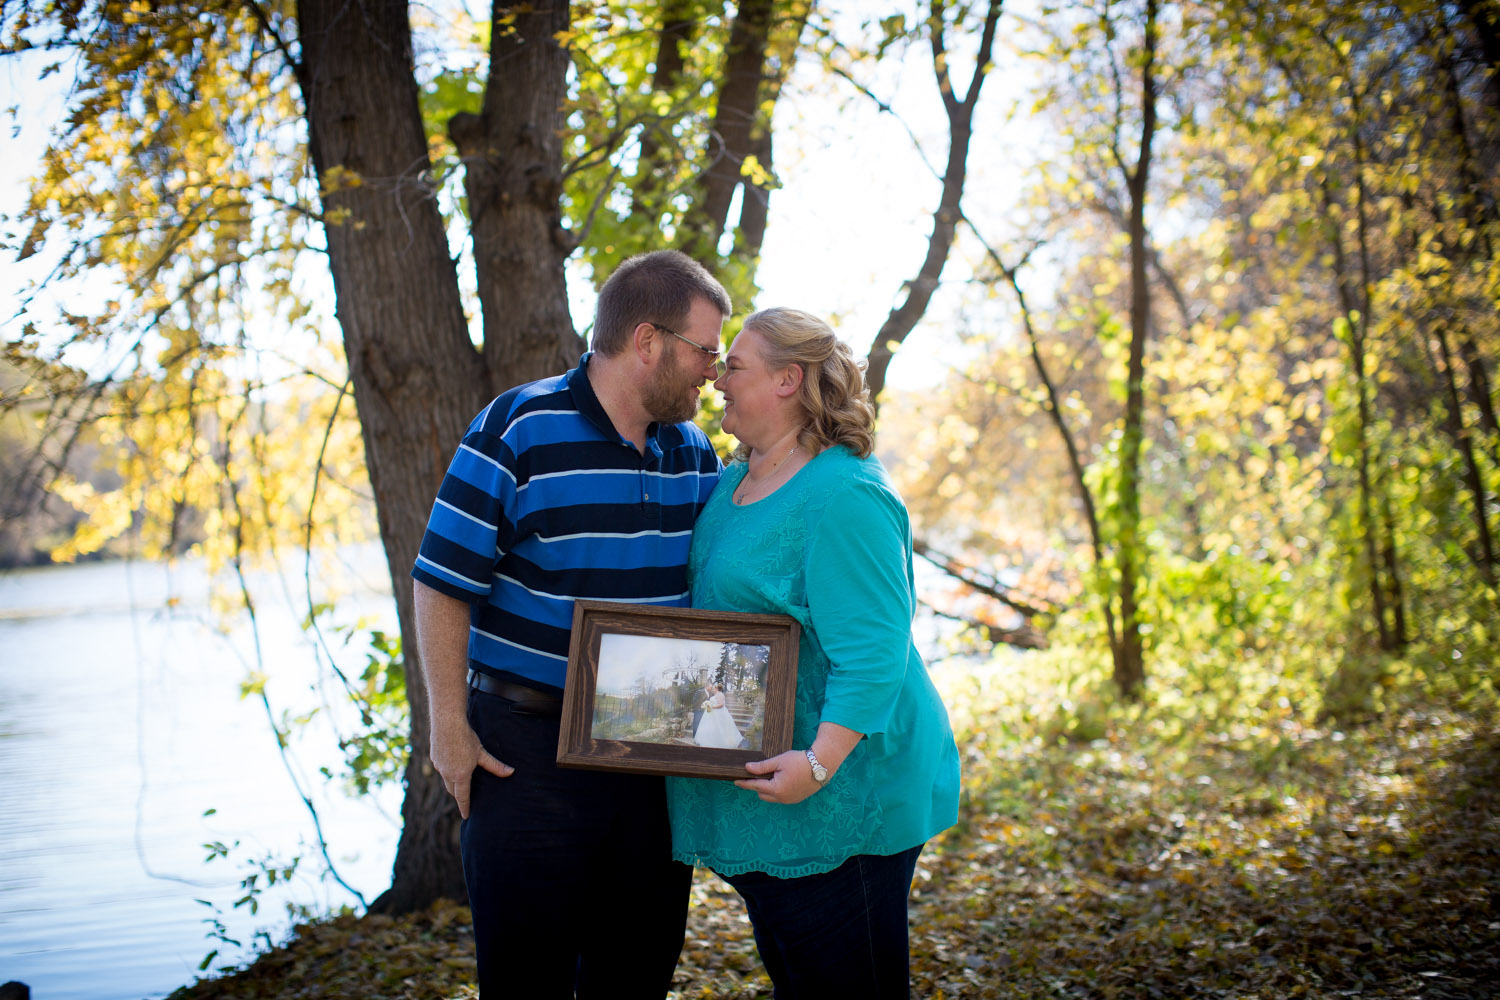 05-mn-fall-family-photographer-fort-snelling-state-park-minnesota-photo-session-chihuahua-color-foliage-anniversary-couples-photo-mahonen-photography.jpg